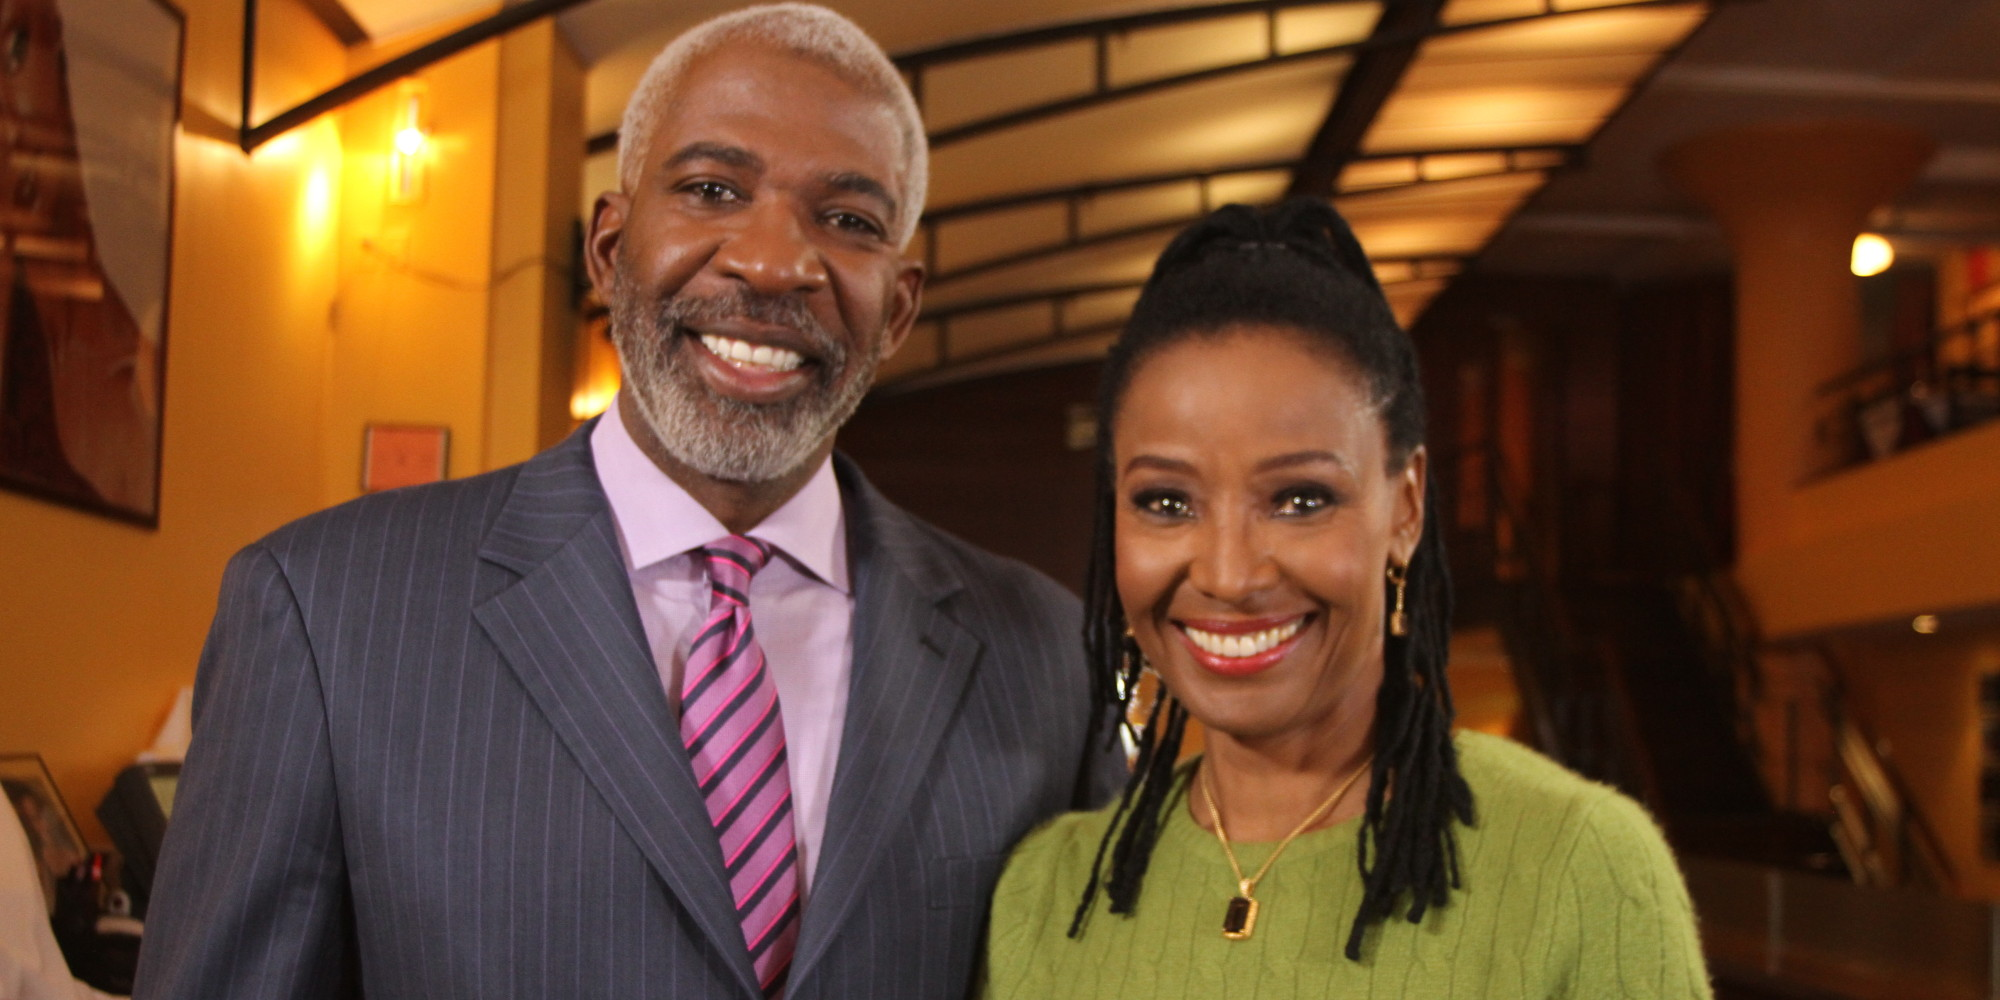 Power Couple Through the Fire: Married for over 20 years, B. Smith and husband Dan Gasby are using an unfortunate circumstance to help others